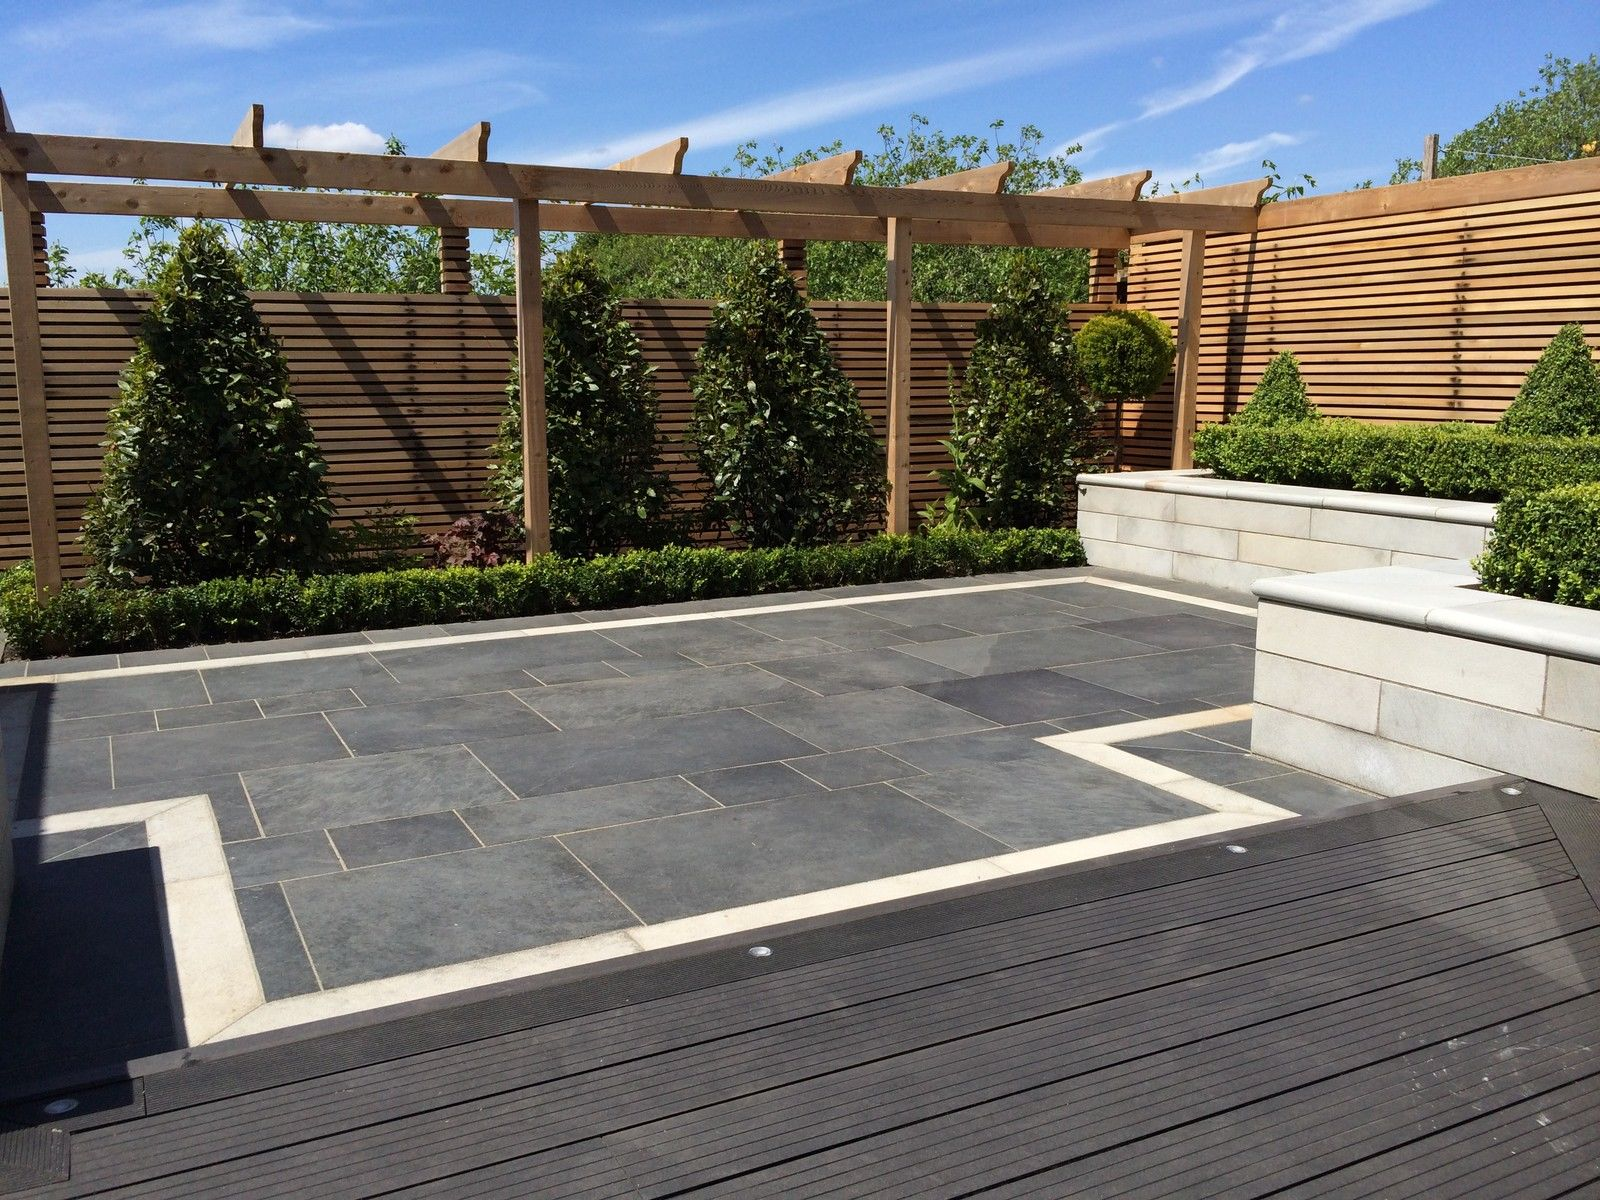 Composite Decking Clarity Charcoal 10 Square Metre Pack (incl. fixings)